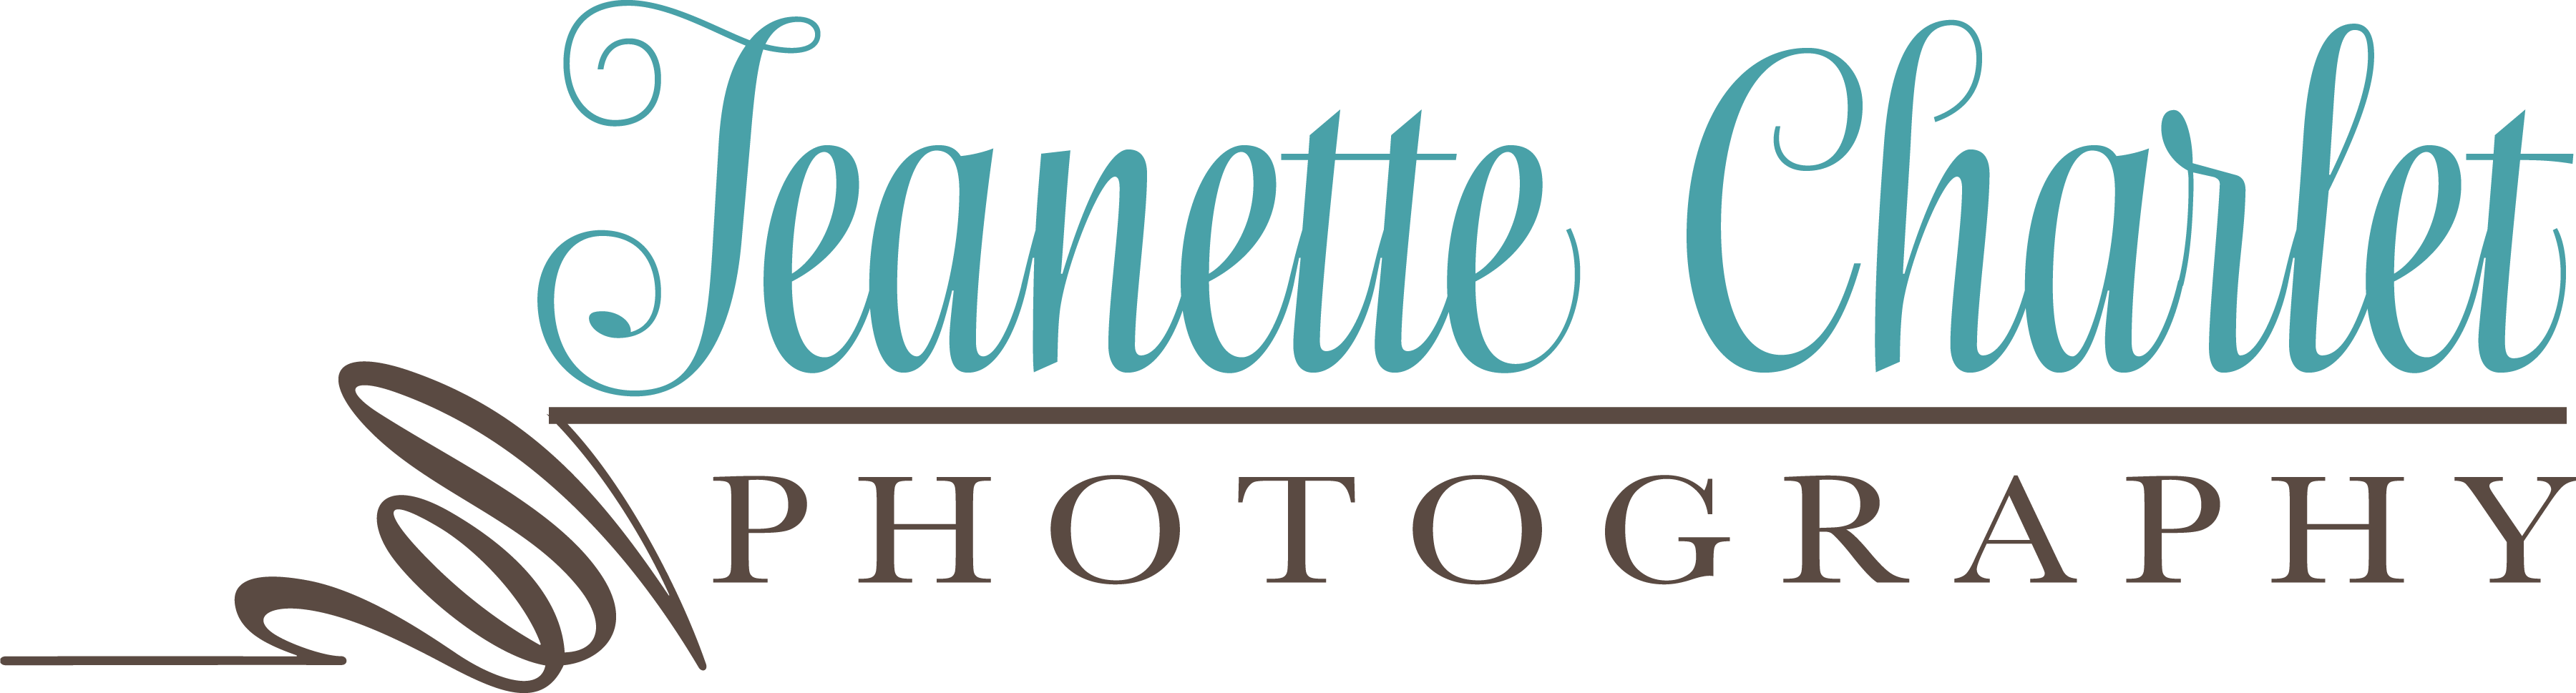 Jeanette Charlet Photography